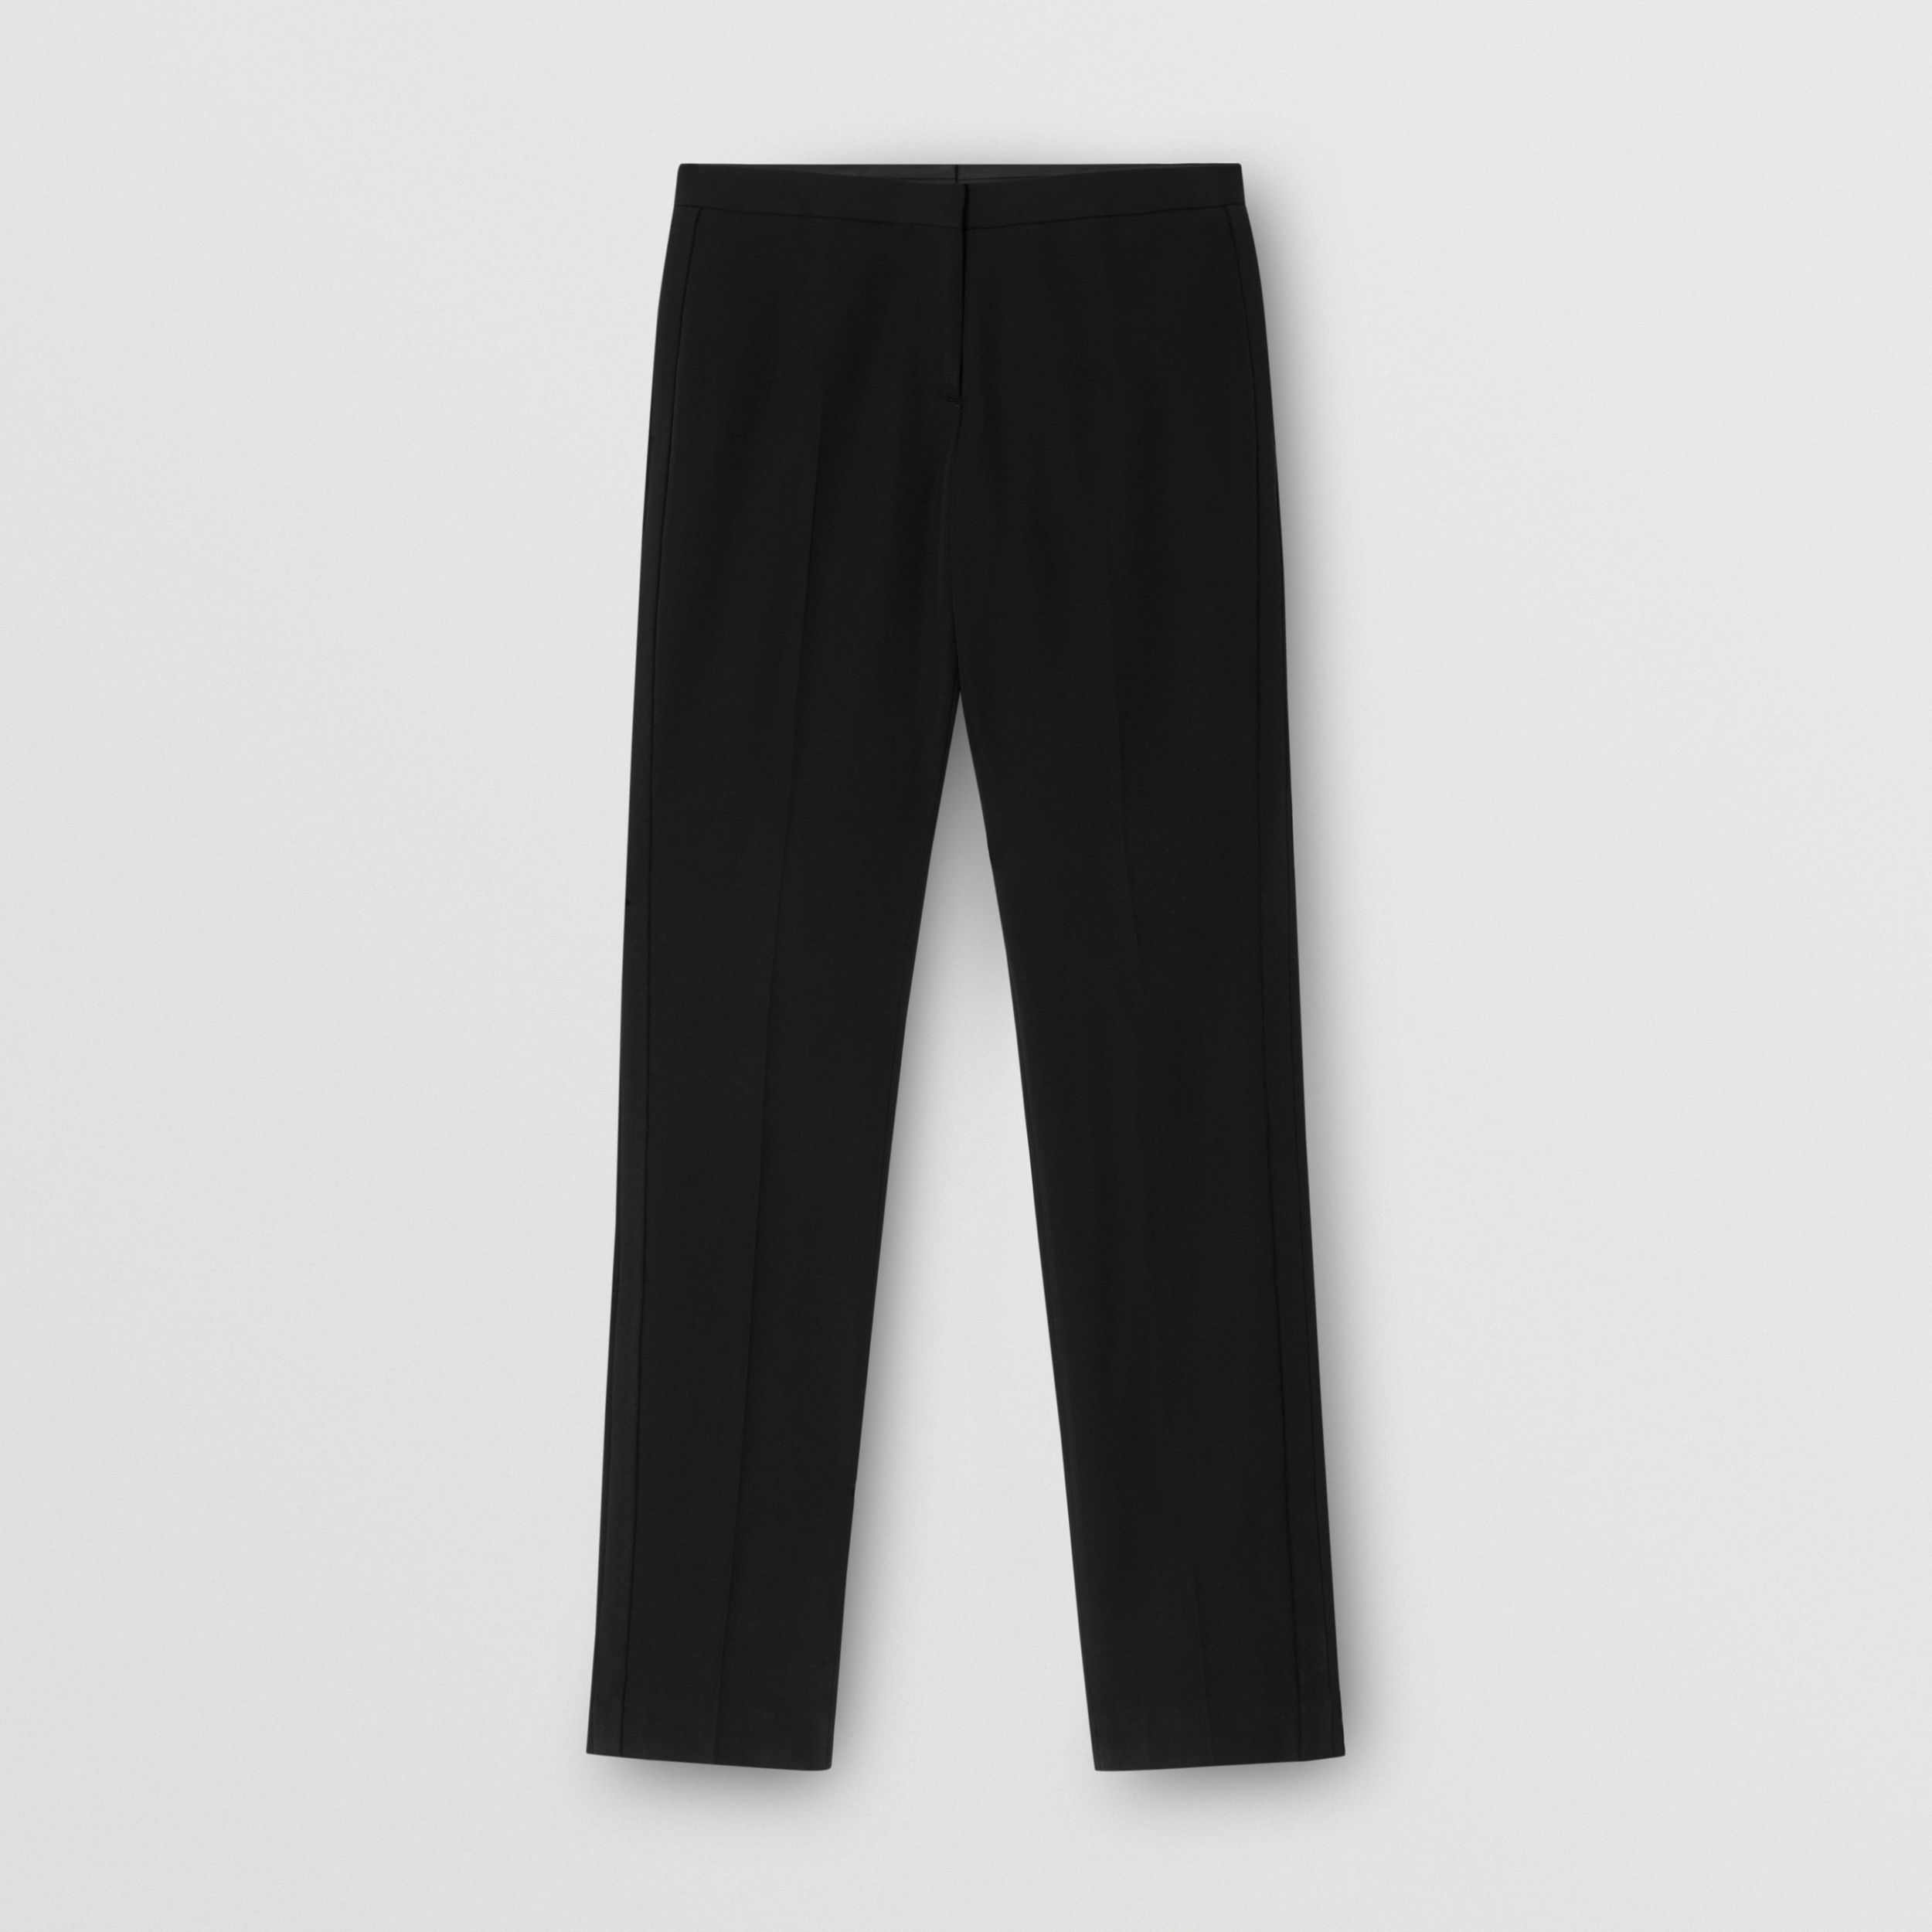 Silk Blend Side Stripe Wool Tailored Trousers in Black - Women | Burberry Australia - 4